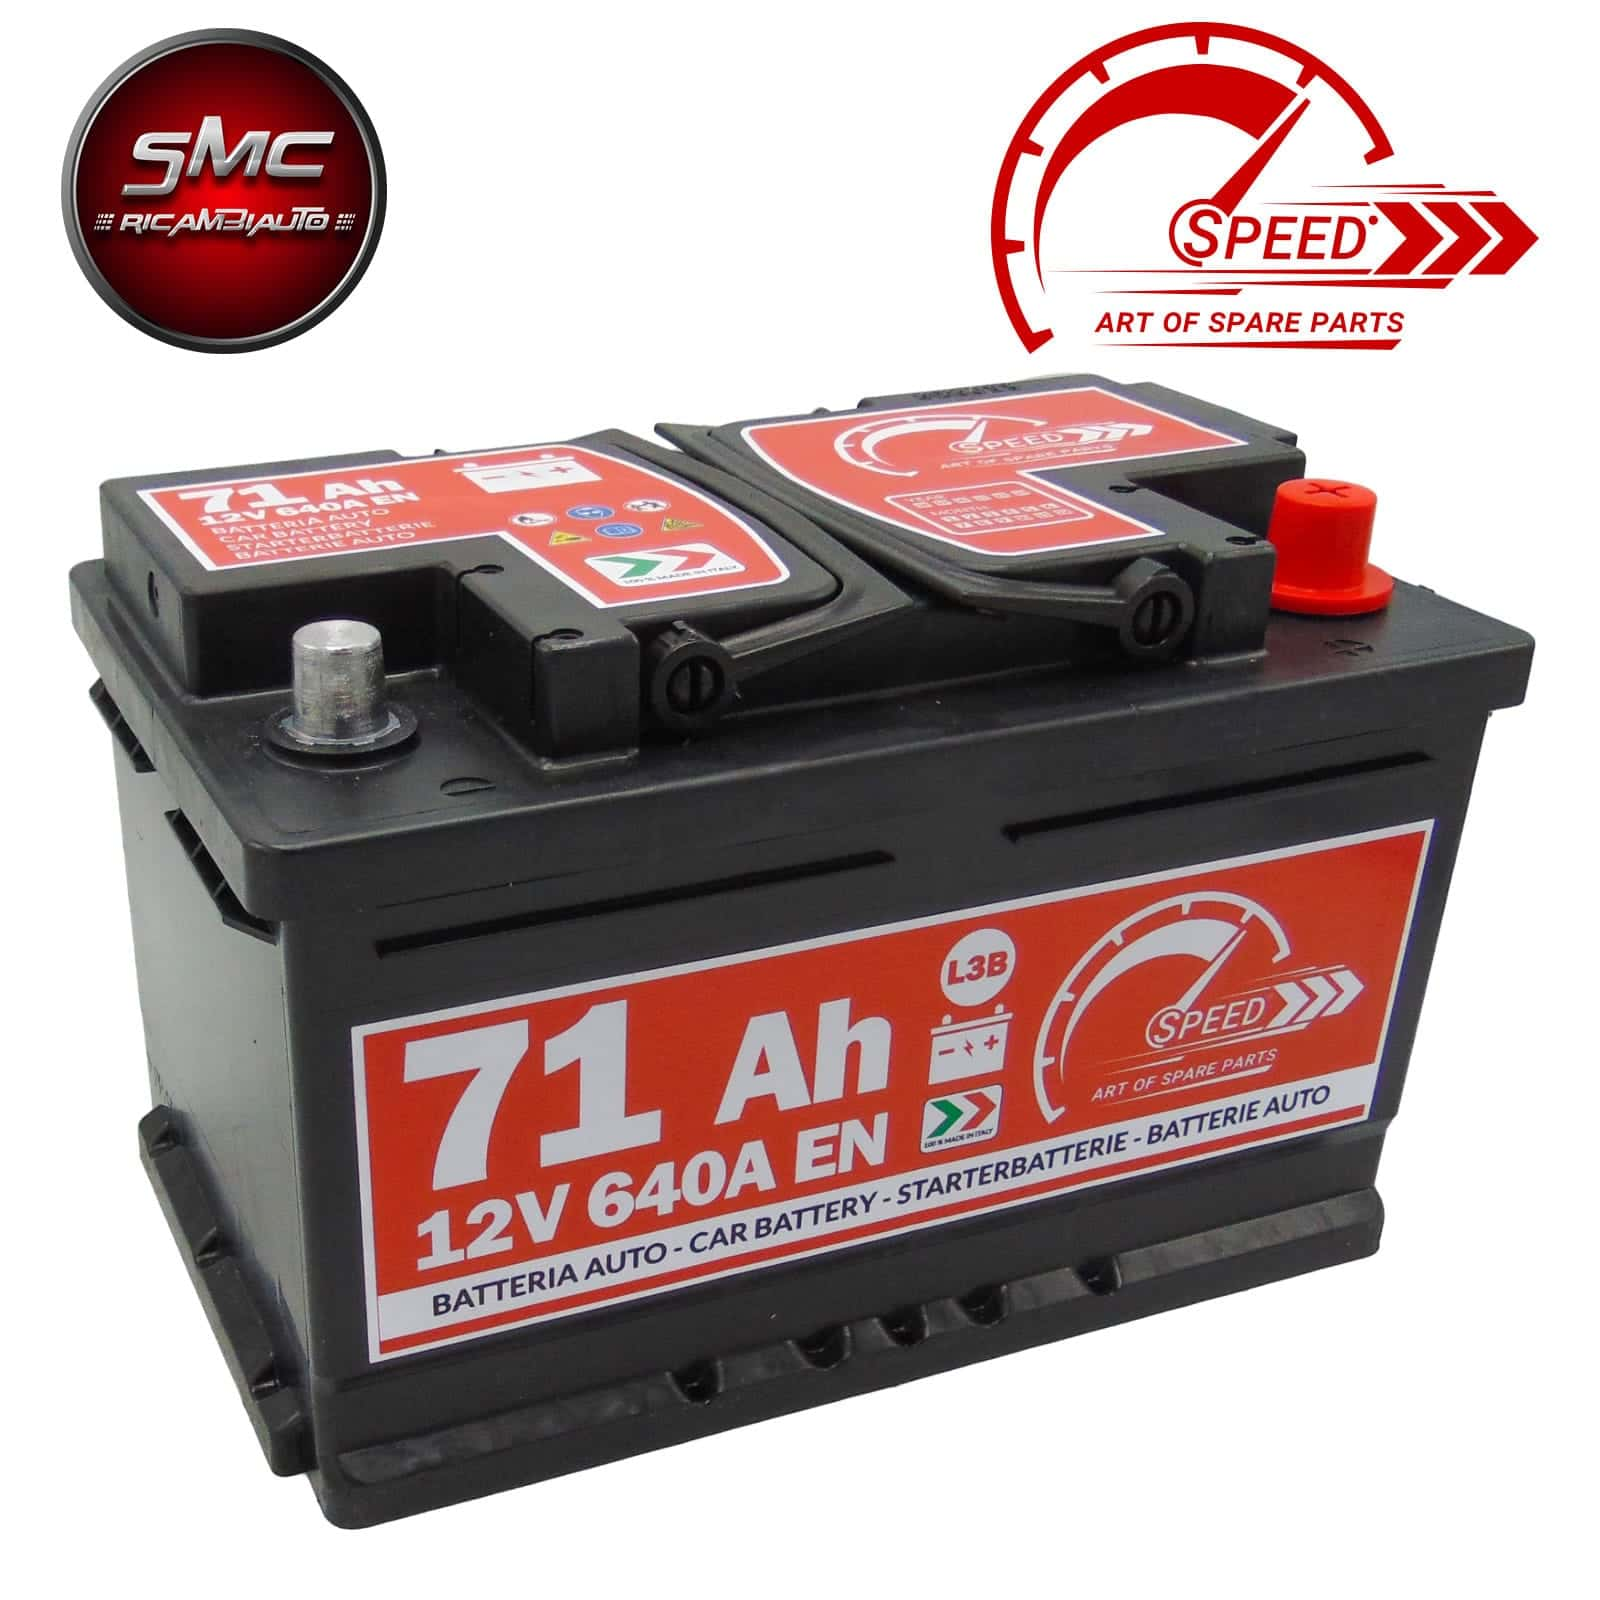 BATTERIA SPEED L3b 71AH 640A 12V